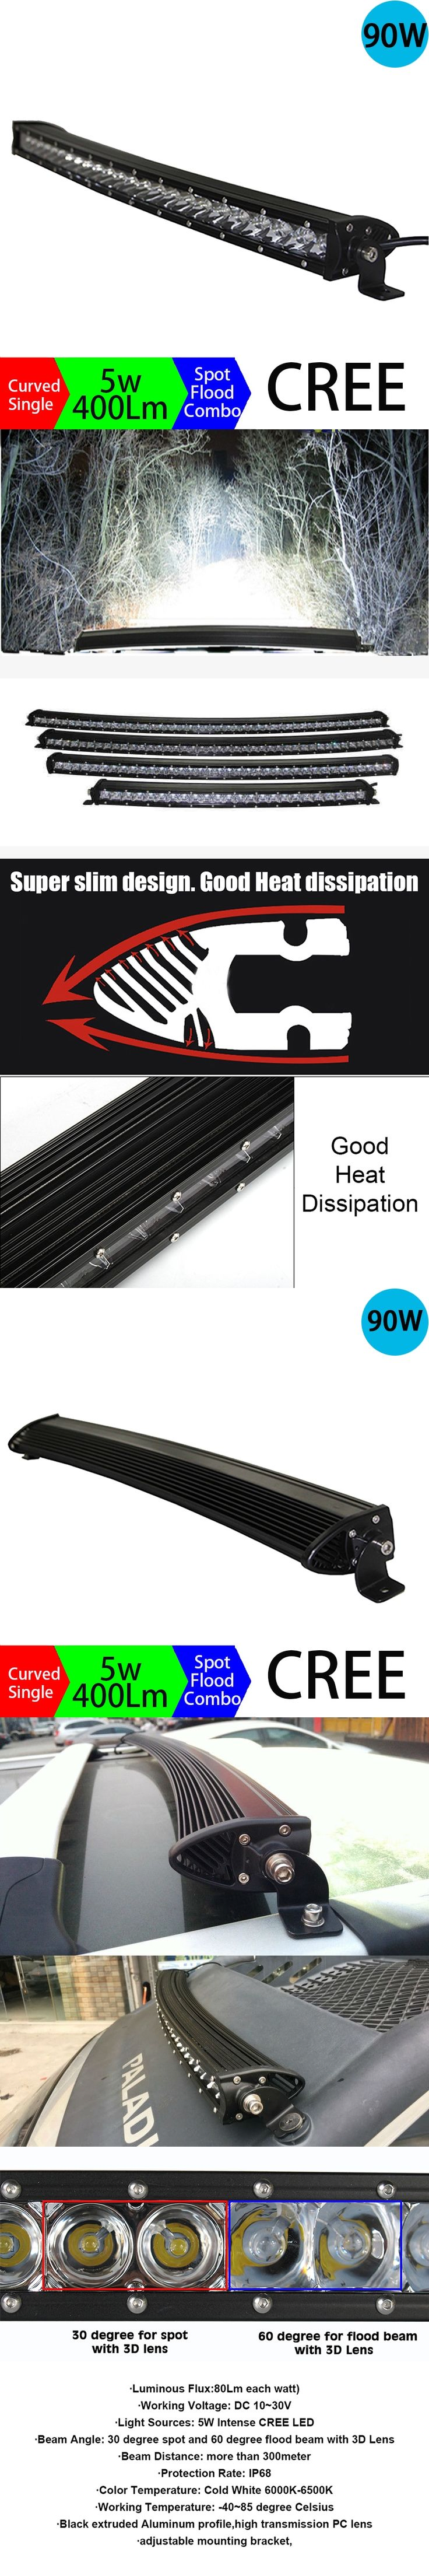 90W  led bar 4x4 High Power Long Distance Super Slim Single Row Curved Work Car Led Light Bar Offroad Driving Lamp Auto Part SUV